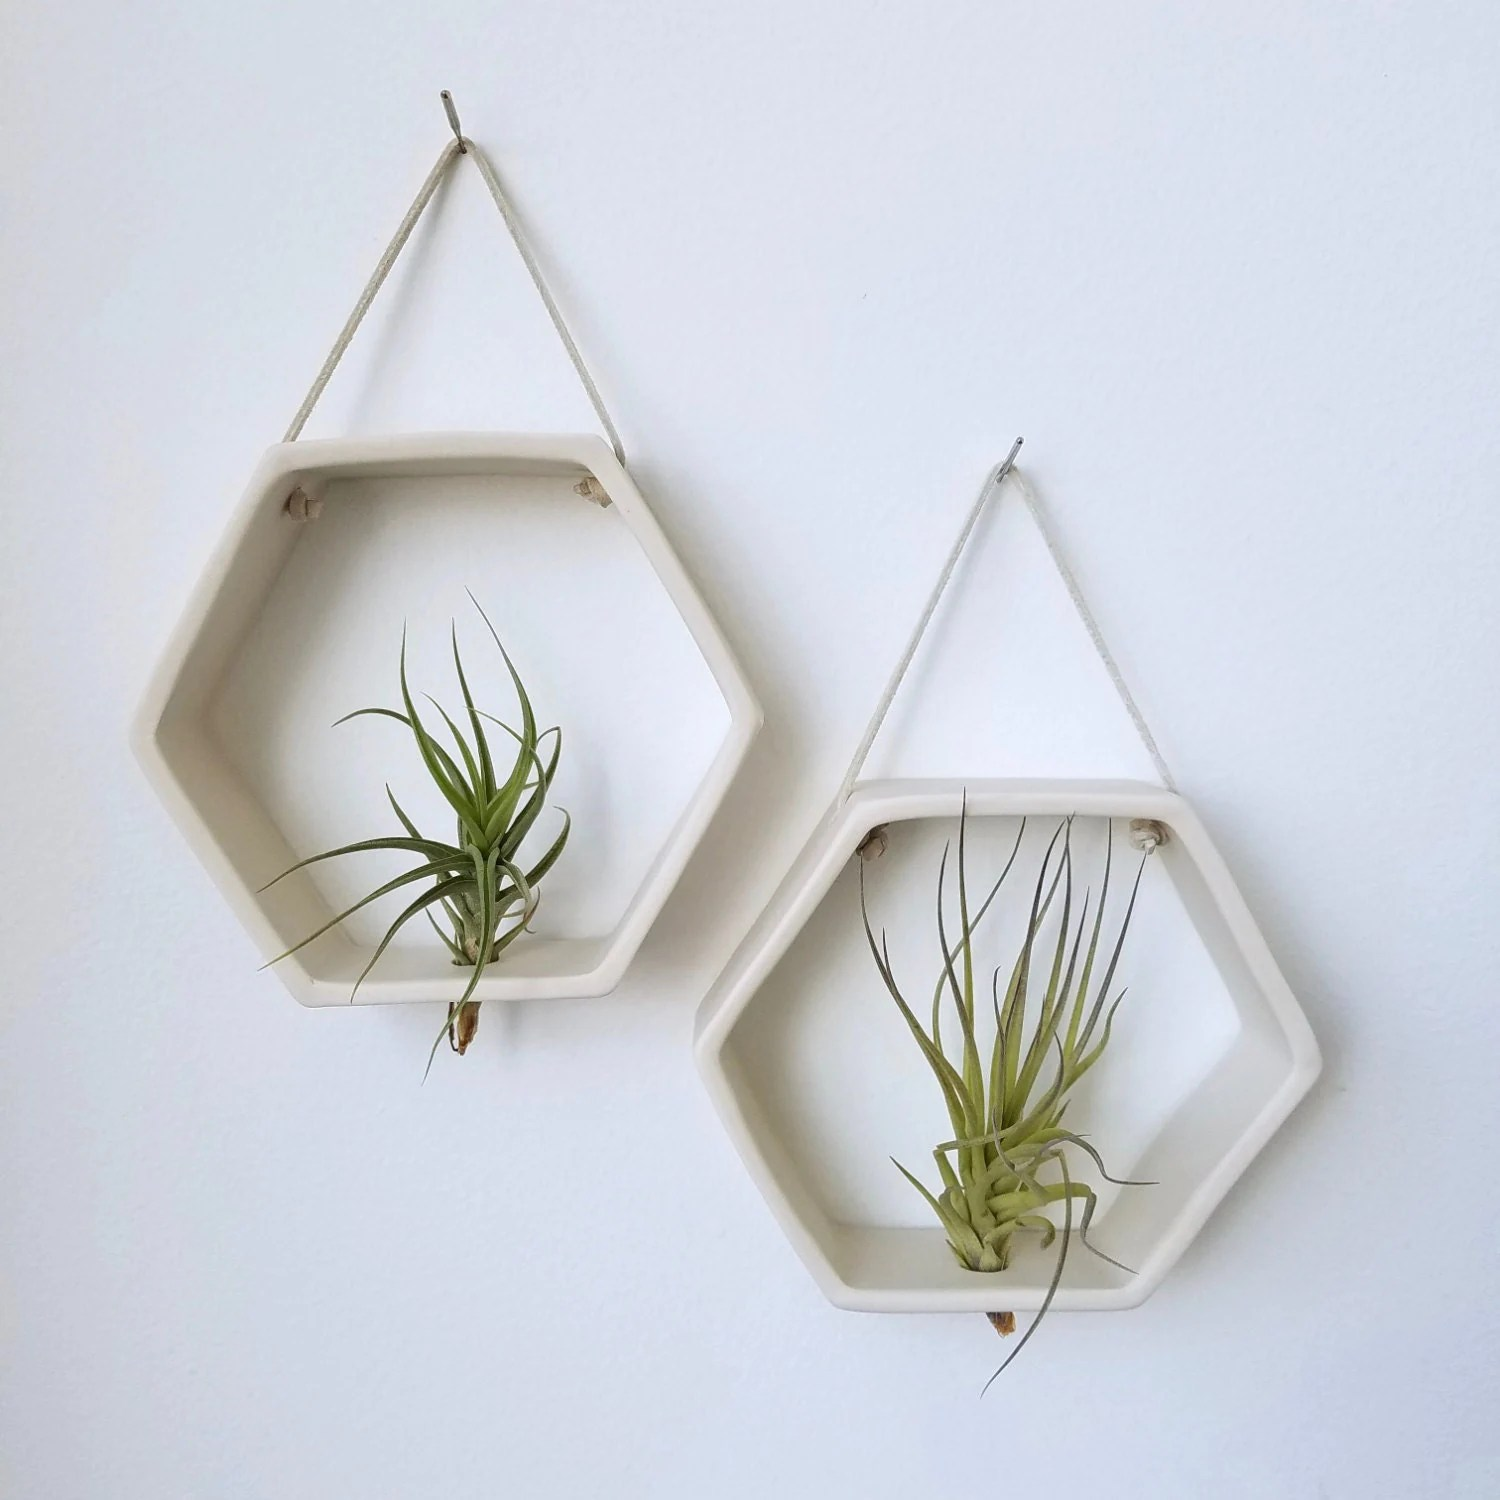 Wall Mounted Plant Holders Porcelain Honeycomb Air Plant Holder Geometric Wall Hanging